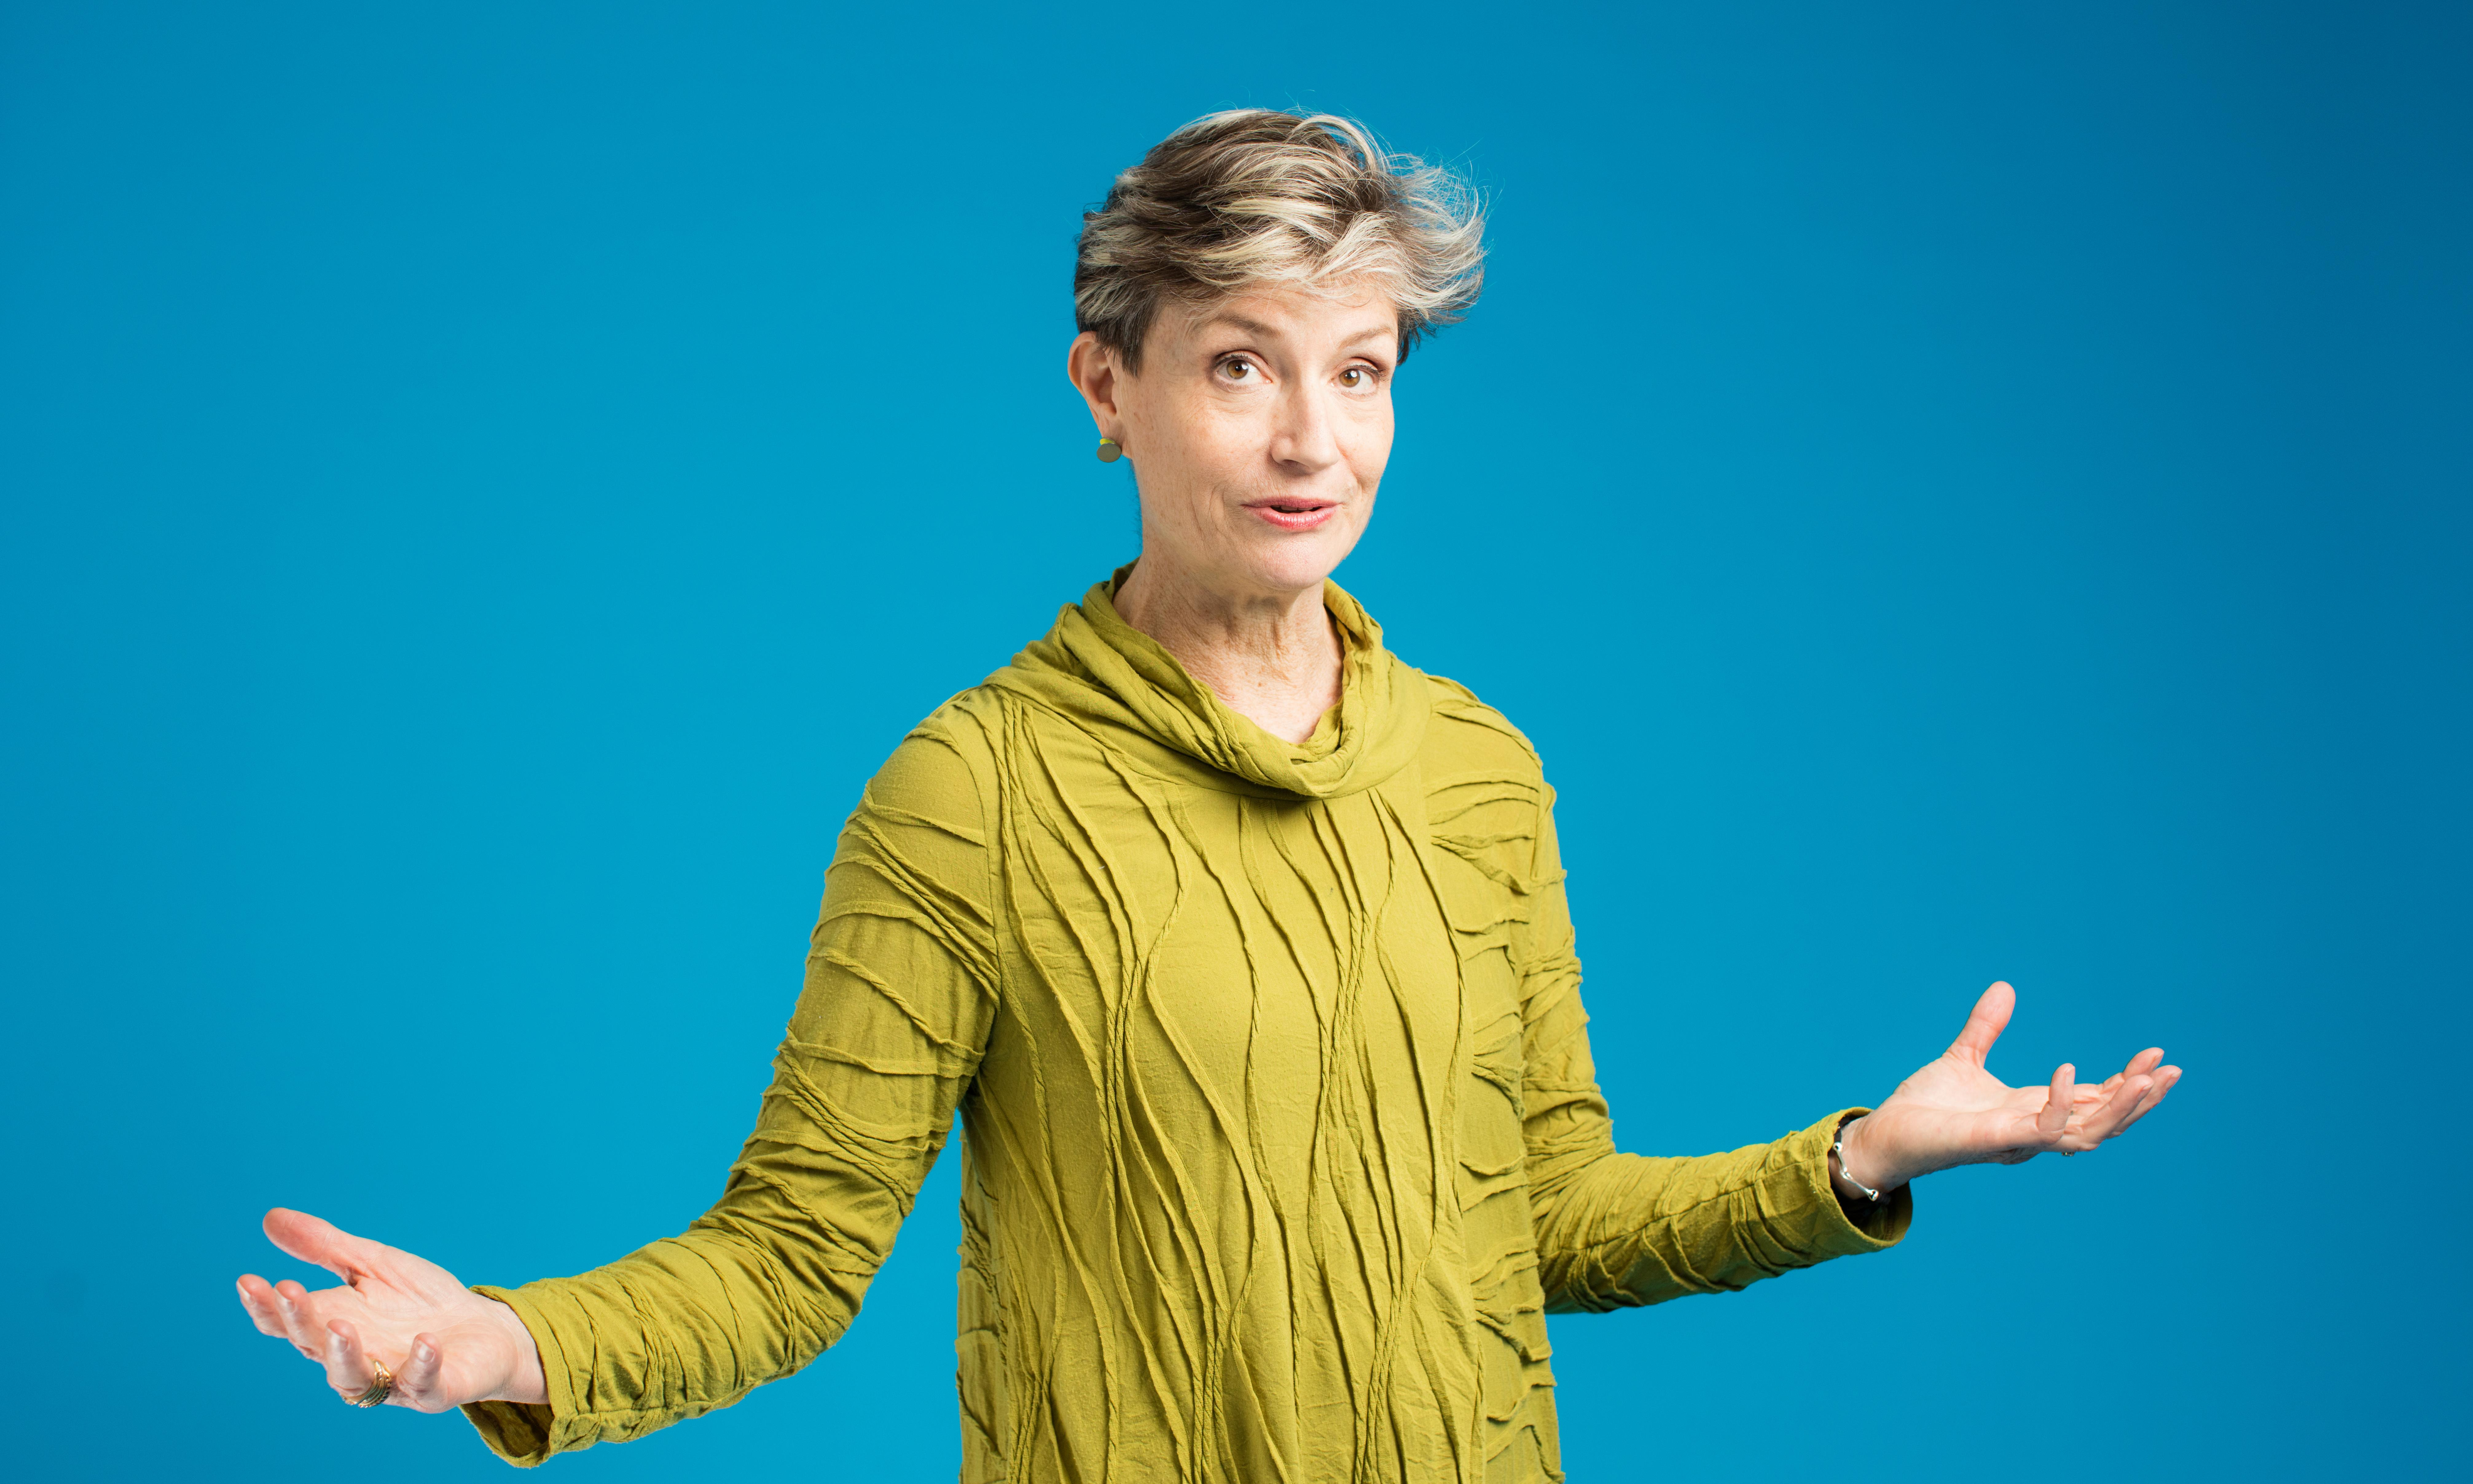 'I refuse to regret waking up a day older': Ashton Applewhite's fight for age pride